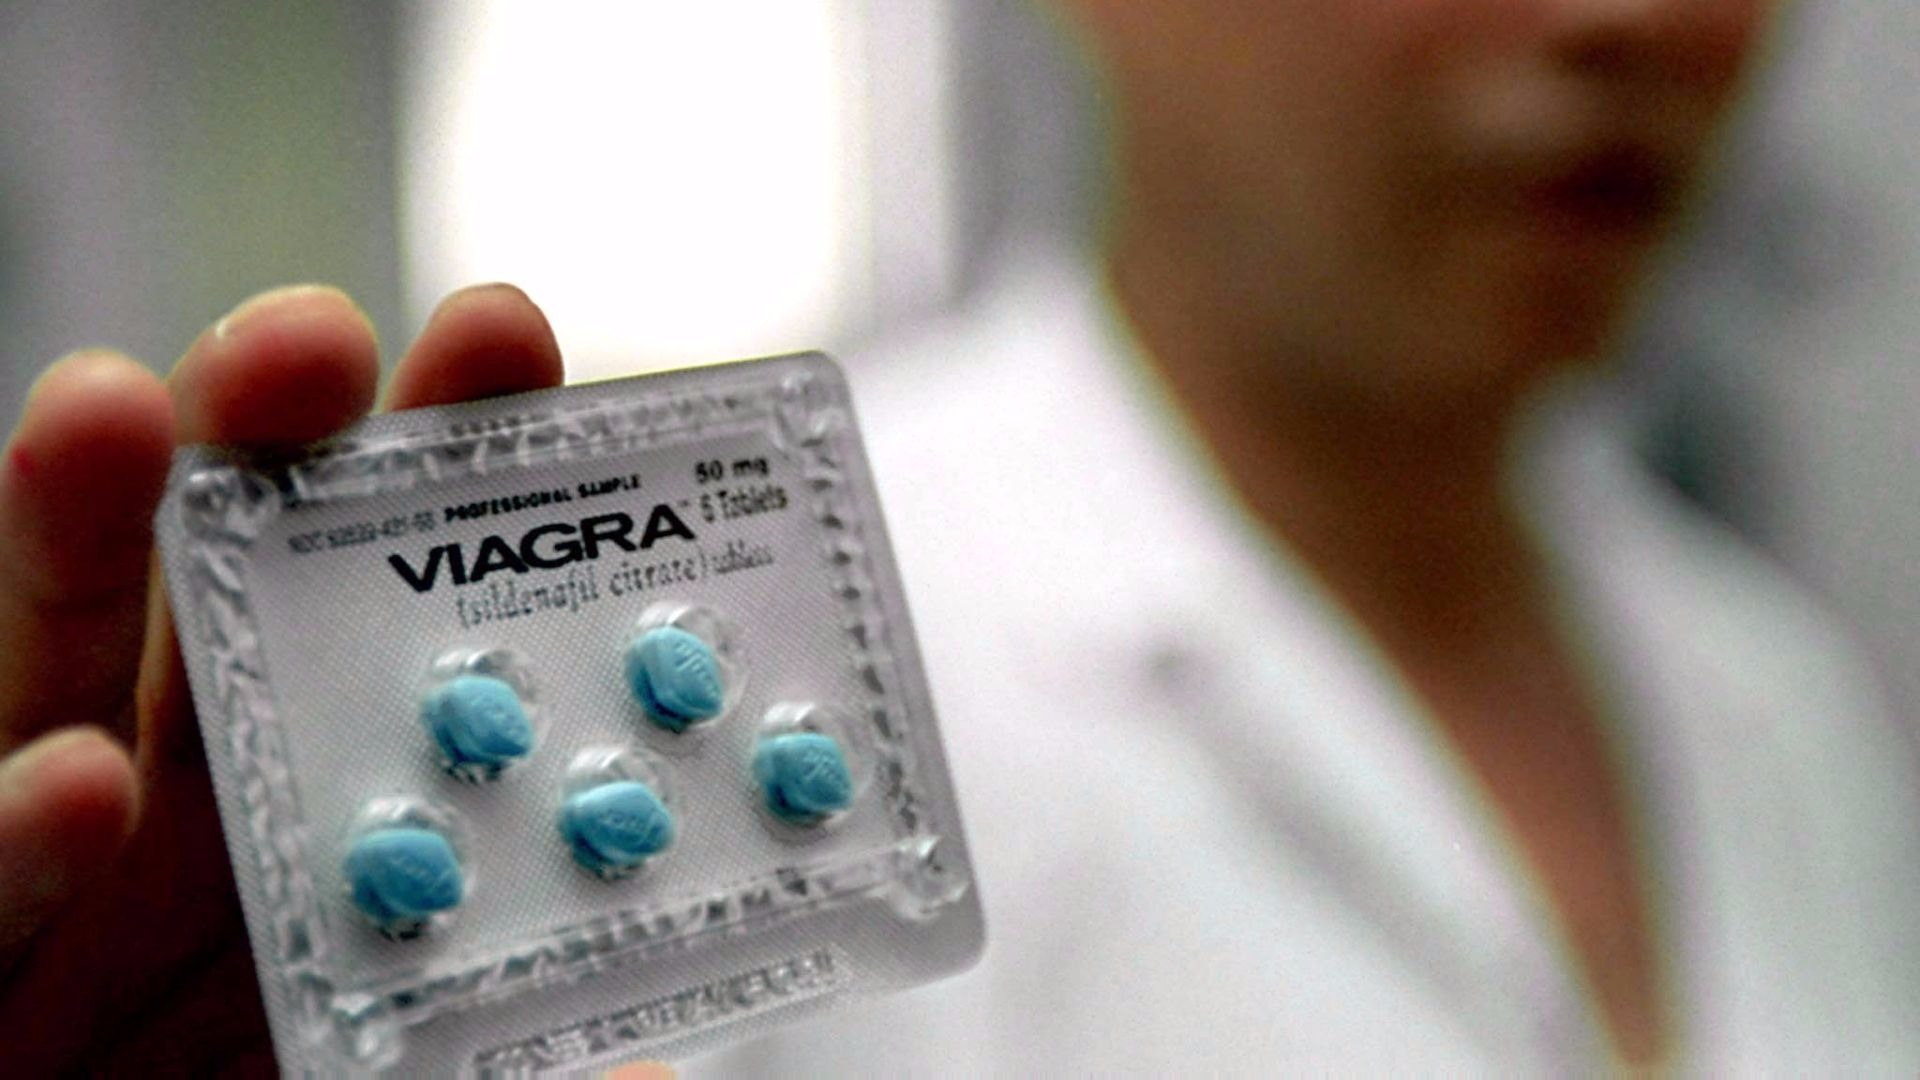 Viagra will be available over the counter from April.